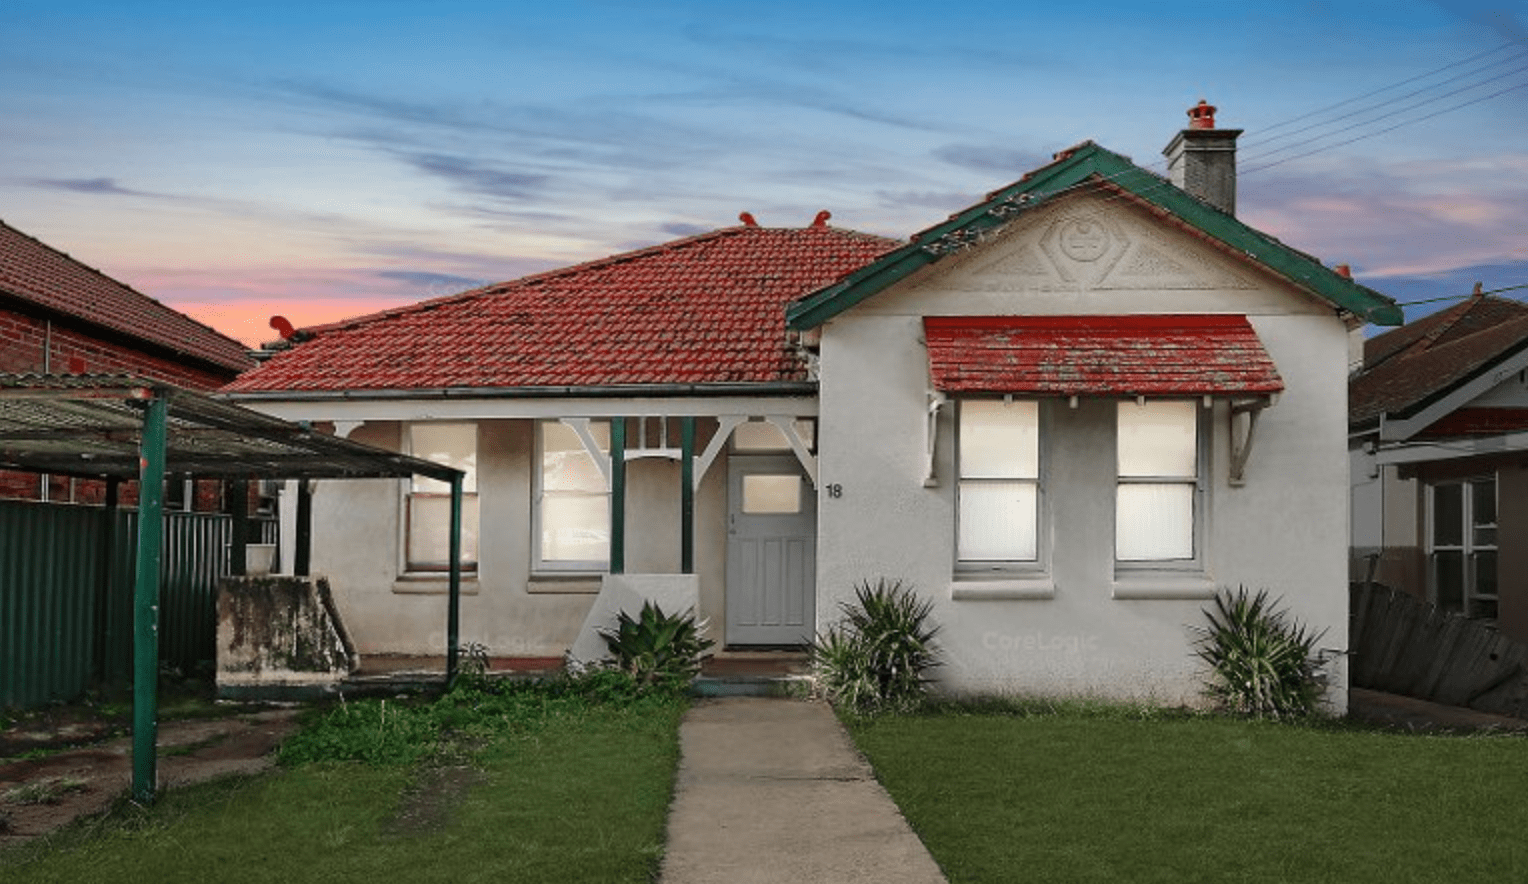 Mortgagee home in Kogarah listed for sale